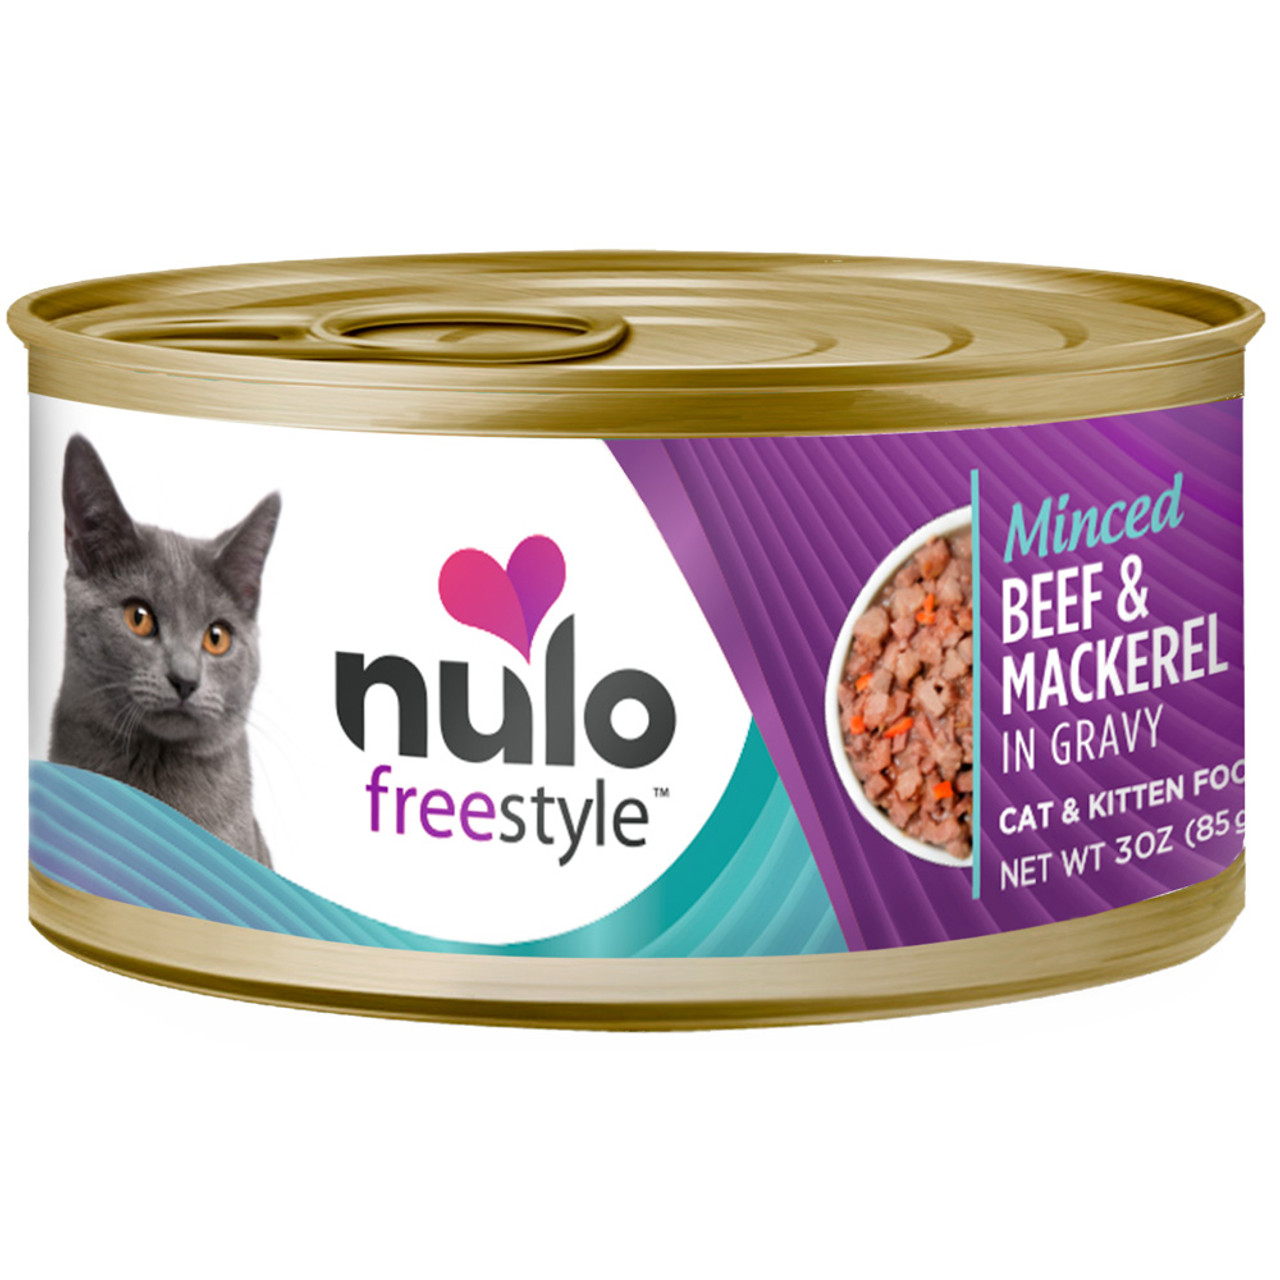 Nulo Freestyle Cat & Kitten Minced Beef & Mackerel Recipe In Gravy Canned Cat Food